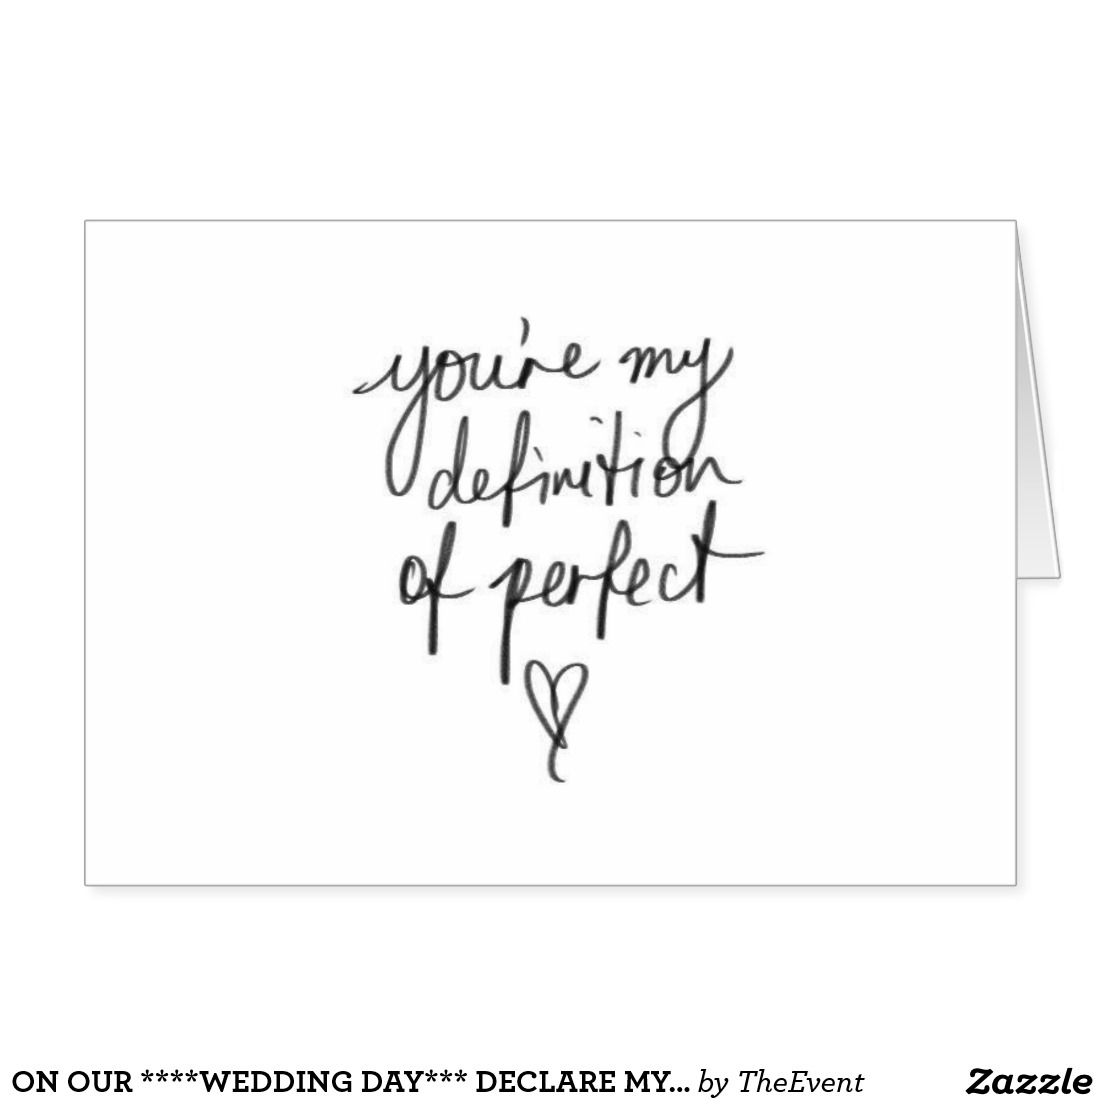 ON OUR ****WEDDING DAY*** DECLARE MY LOVE | Zazzle.com